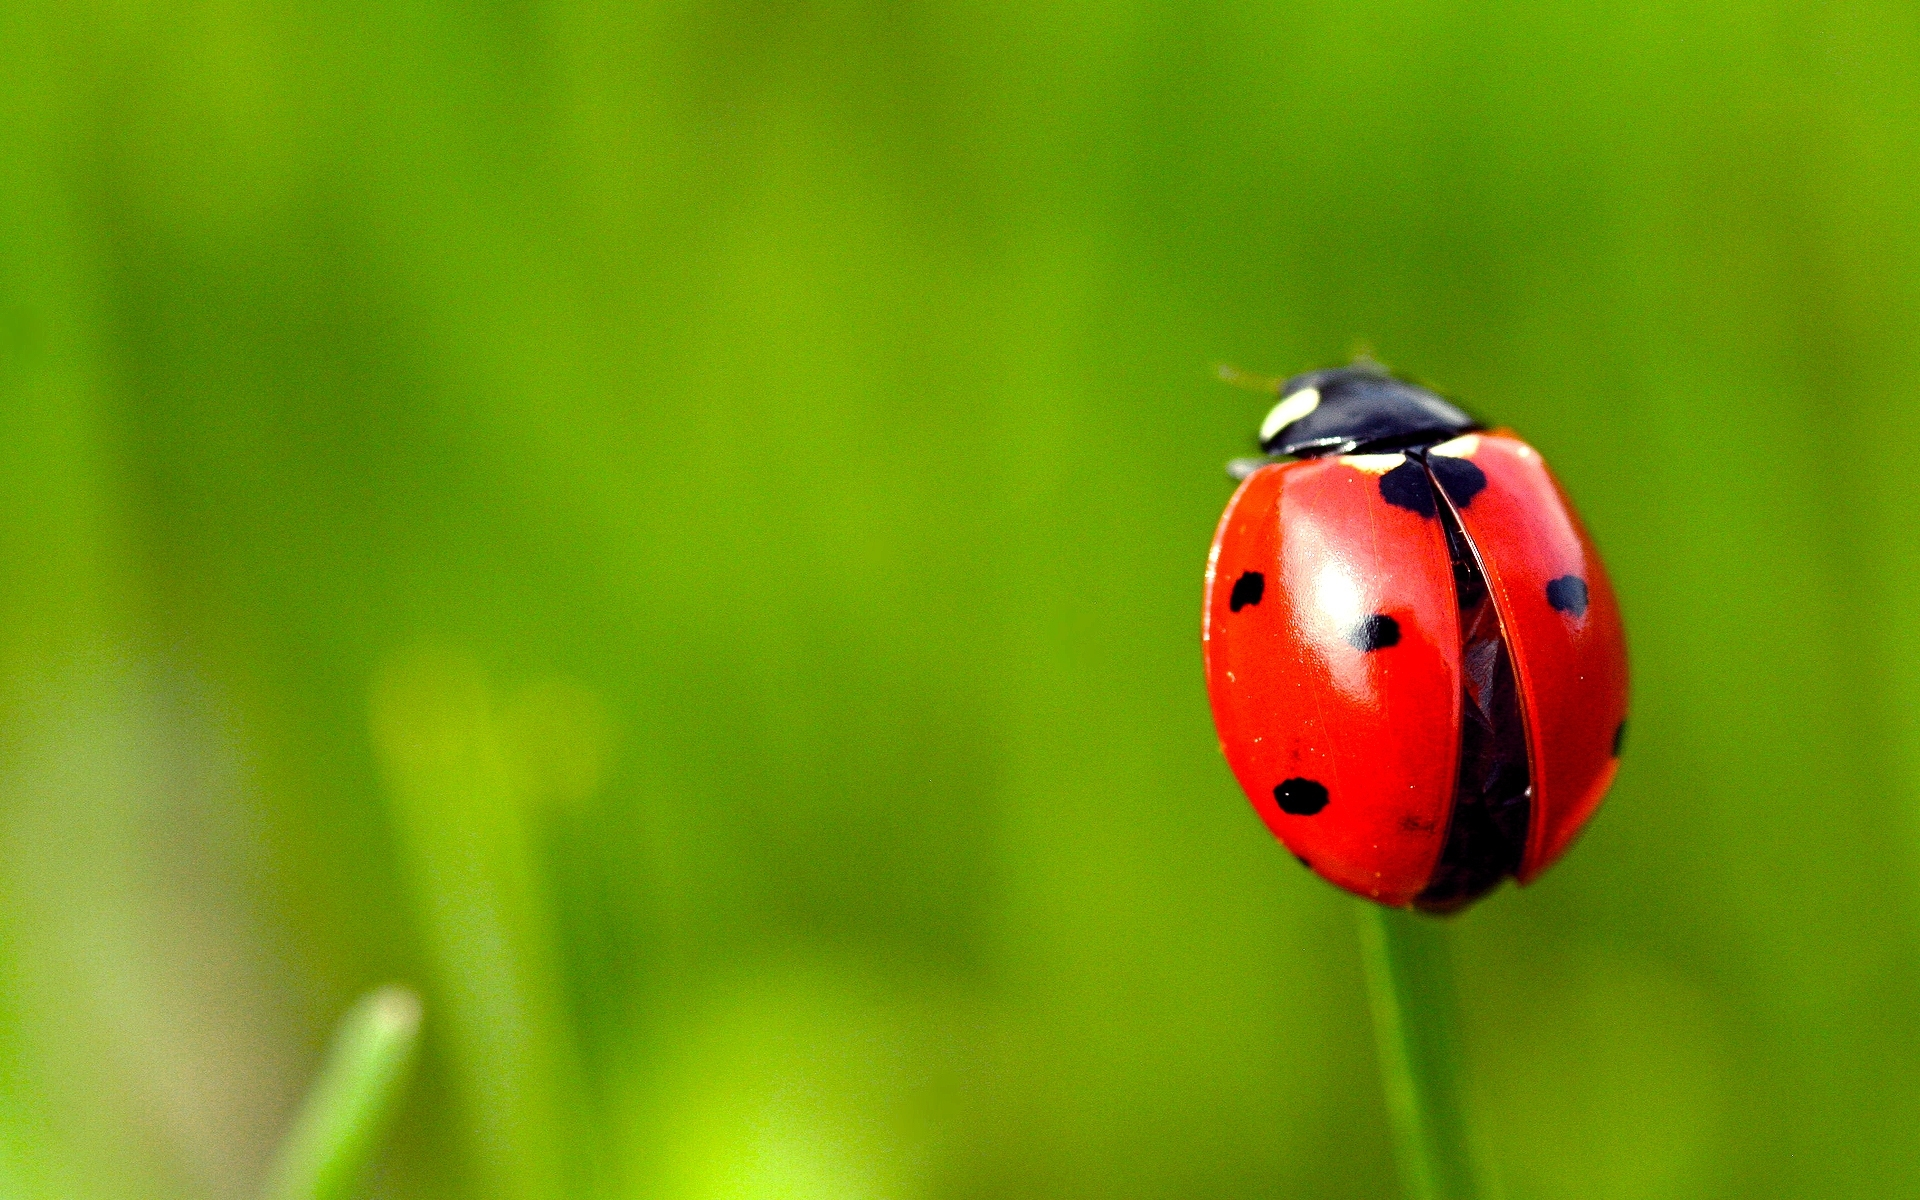 30136 download wallpaper Insects, Ladybugs screensavers and pictures for free